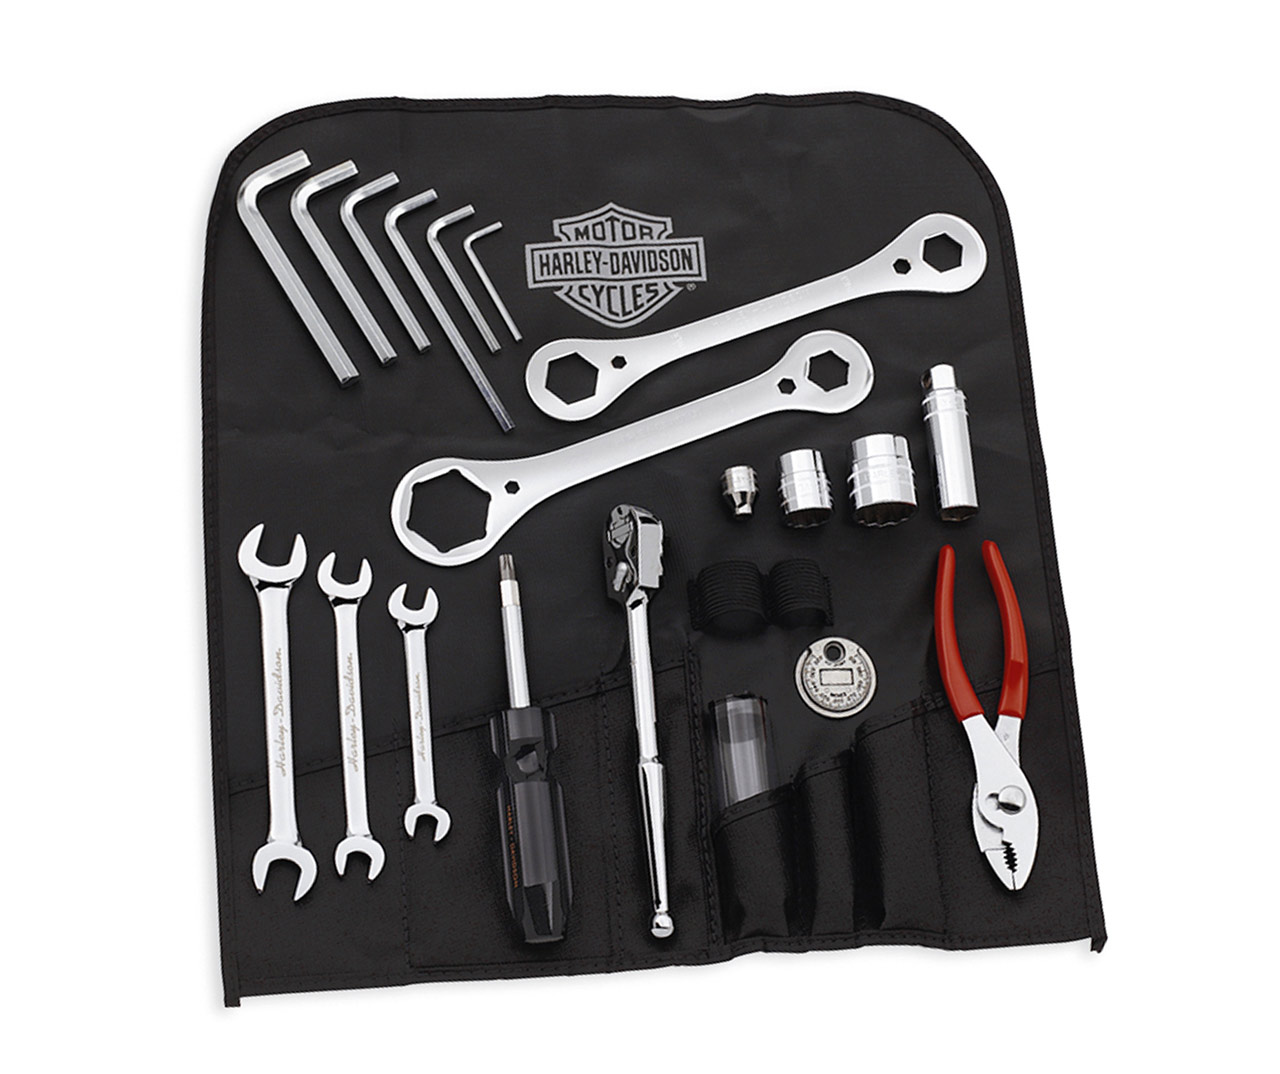 Harley Davidson Tool Kit List